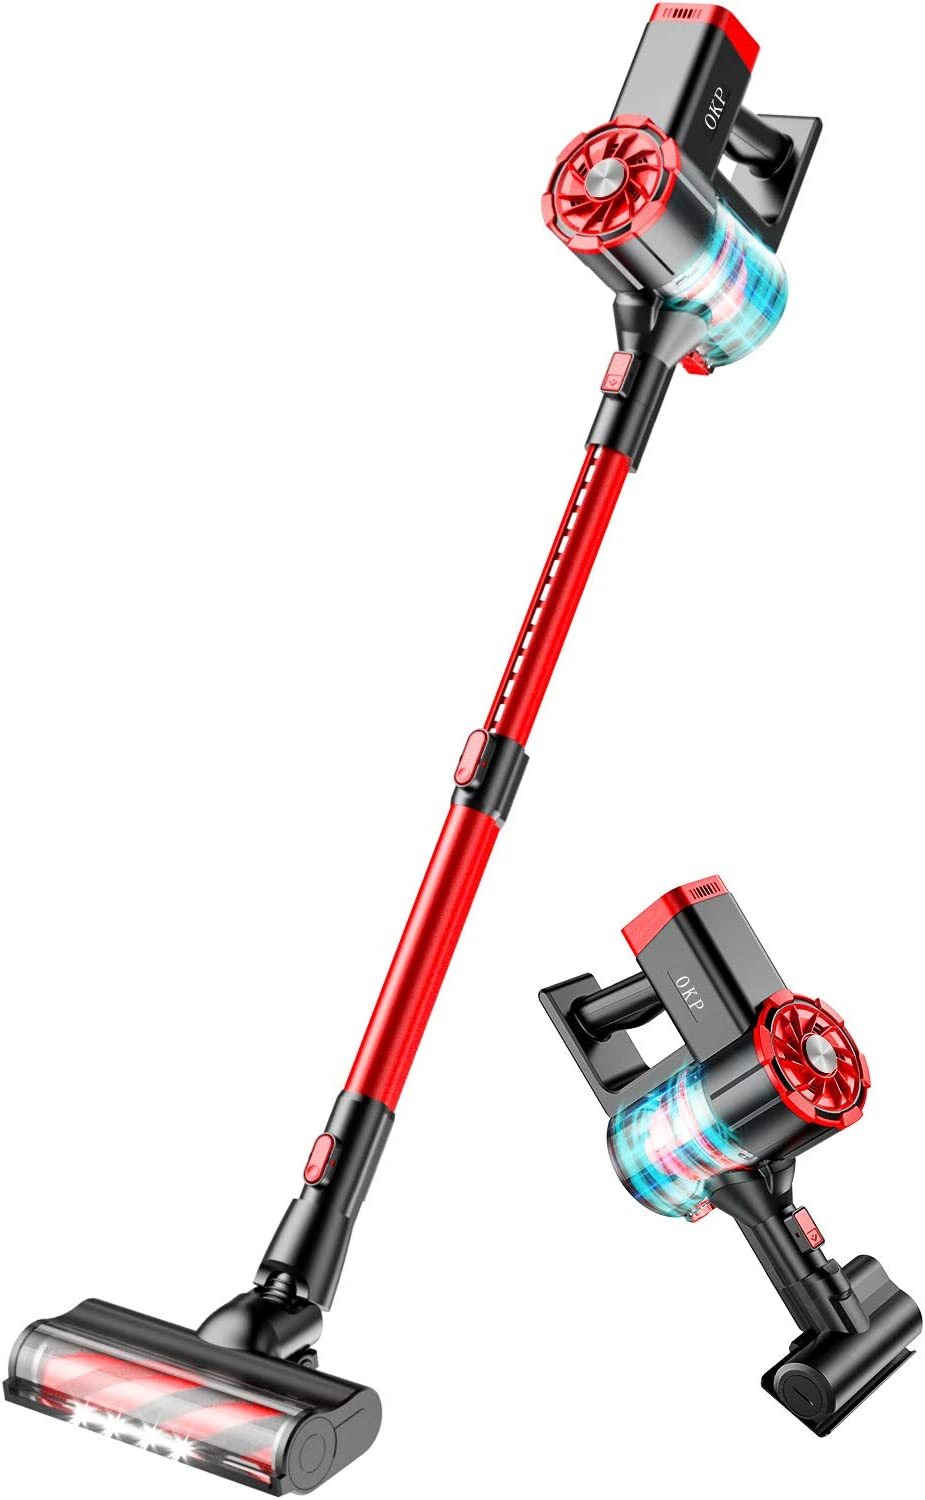 Cordless Vacuum Cleaner 4 in 1 Powerful Suction 21KPa Stick Handheld Wireless Vacuums Cleaner Lightweight for Home Hard Floor Carpet Car Pet Hair OKP S100